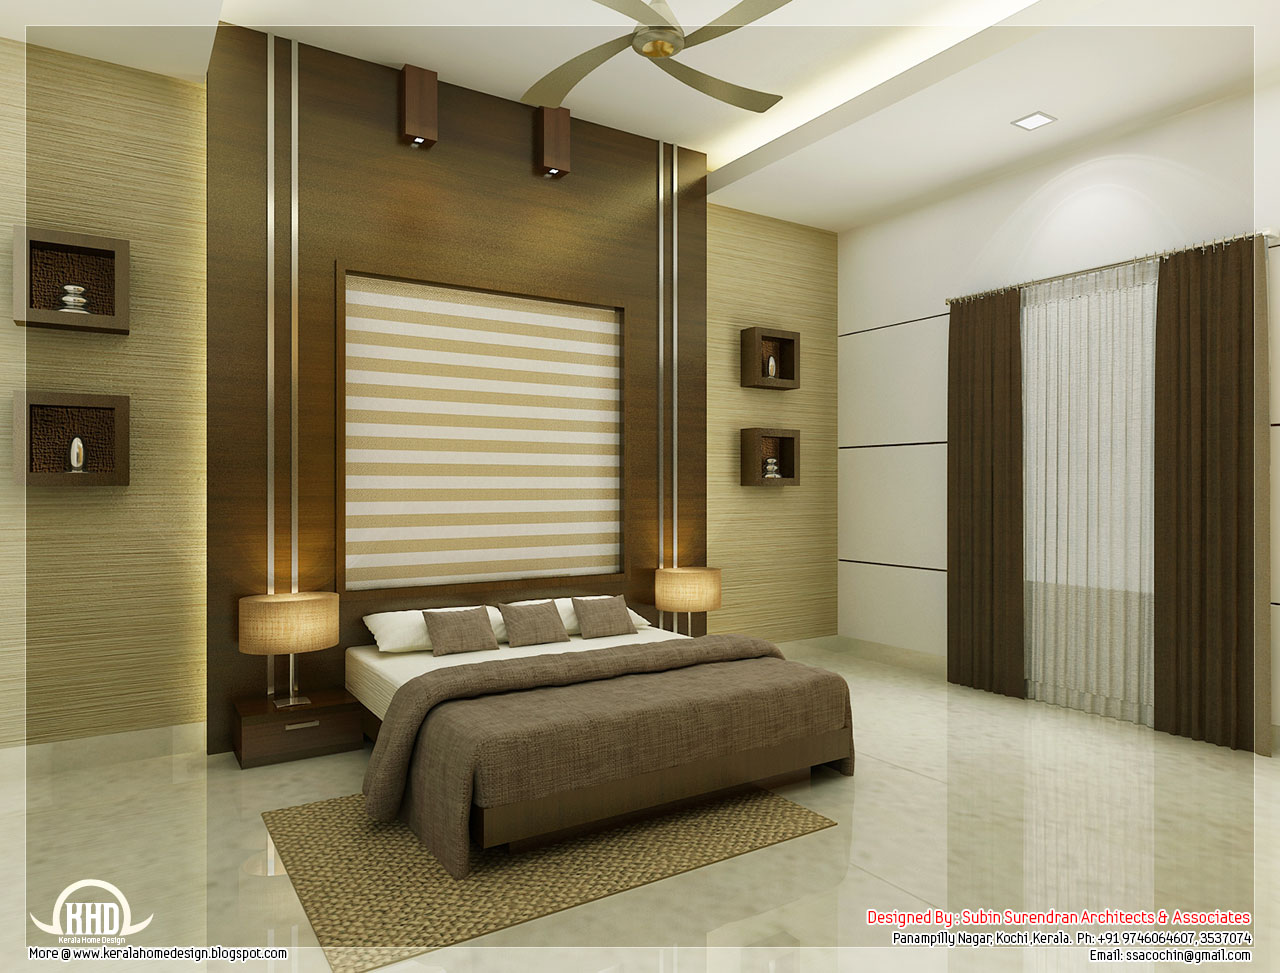 Remarkable Beautiful Interior Design Bedrooms 1280 x 973 · 226 kB · jpeg